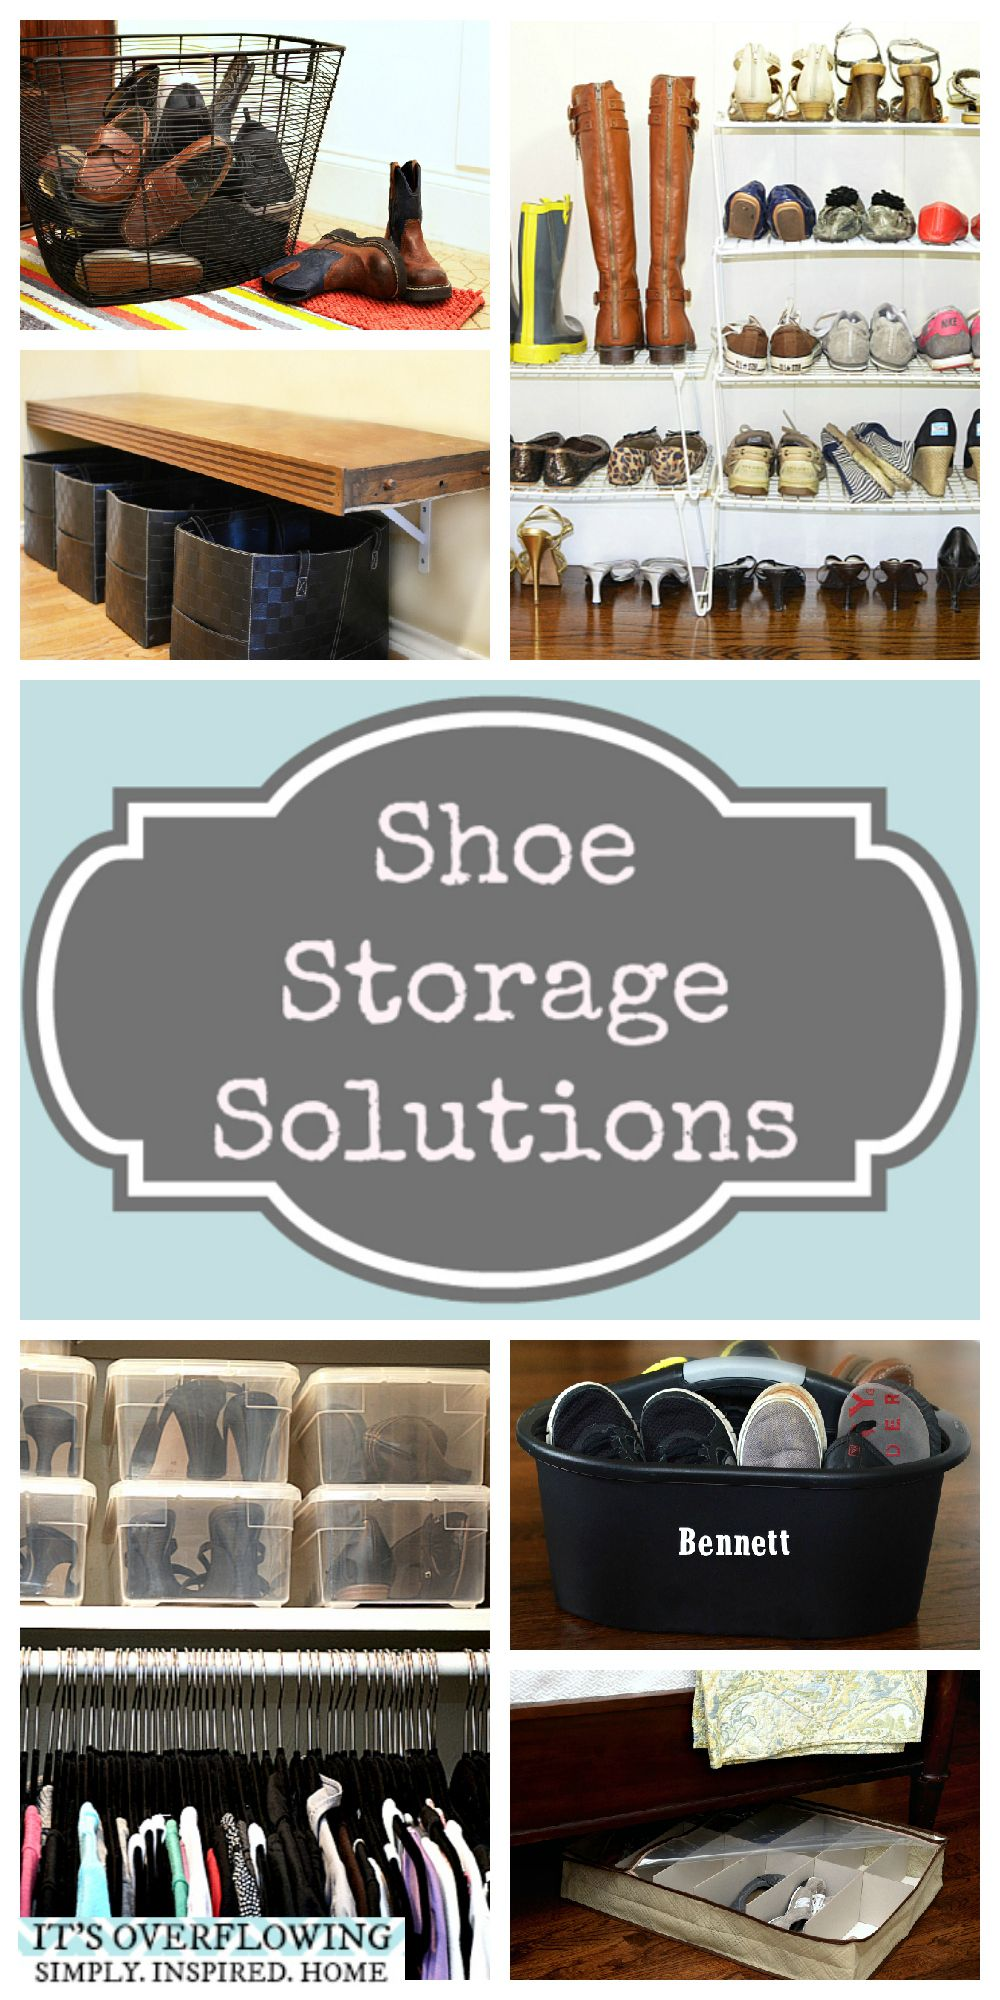 GREAT Shoe Storage Solution click to